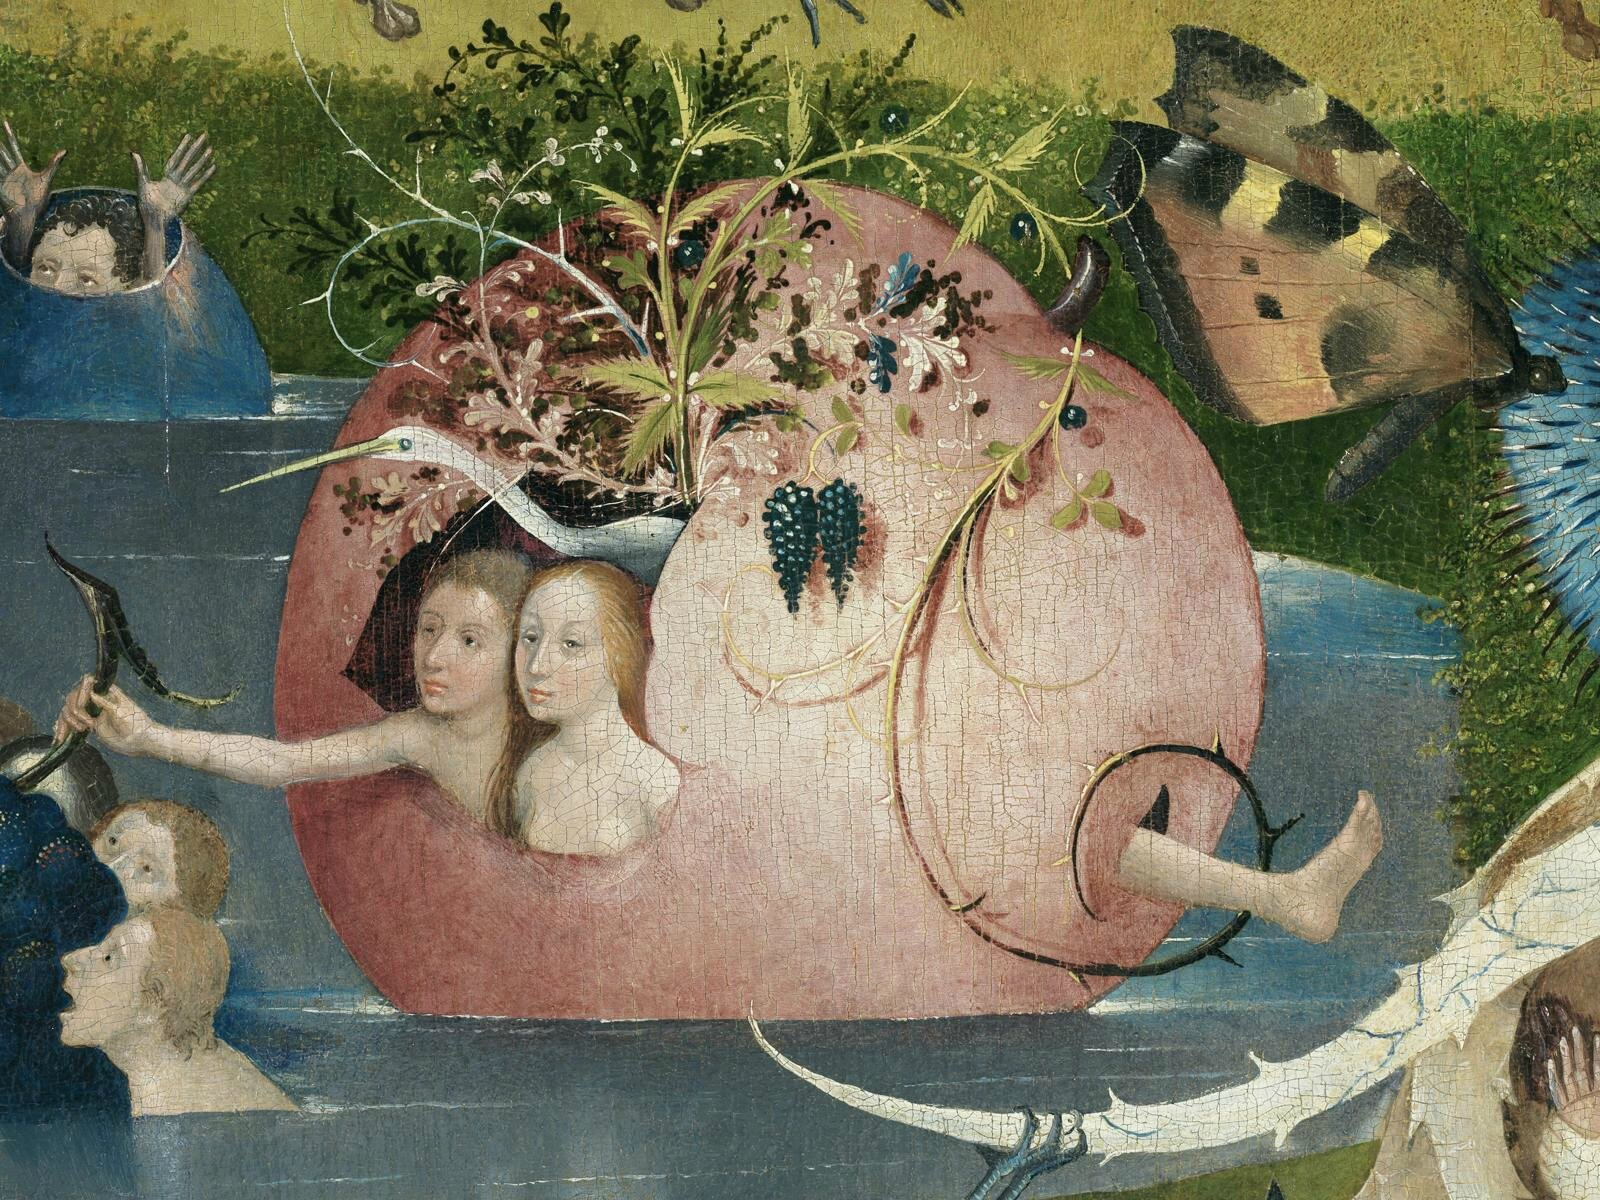 Exhibition at the Prado marks 5th centenary of the death of Jheronimus Bosch